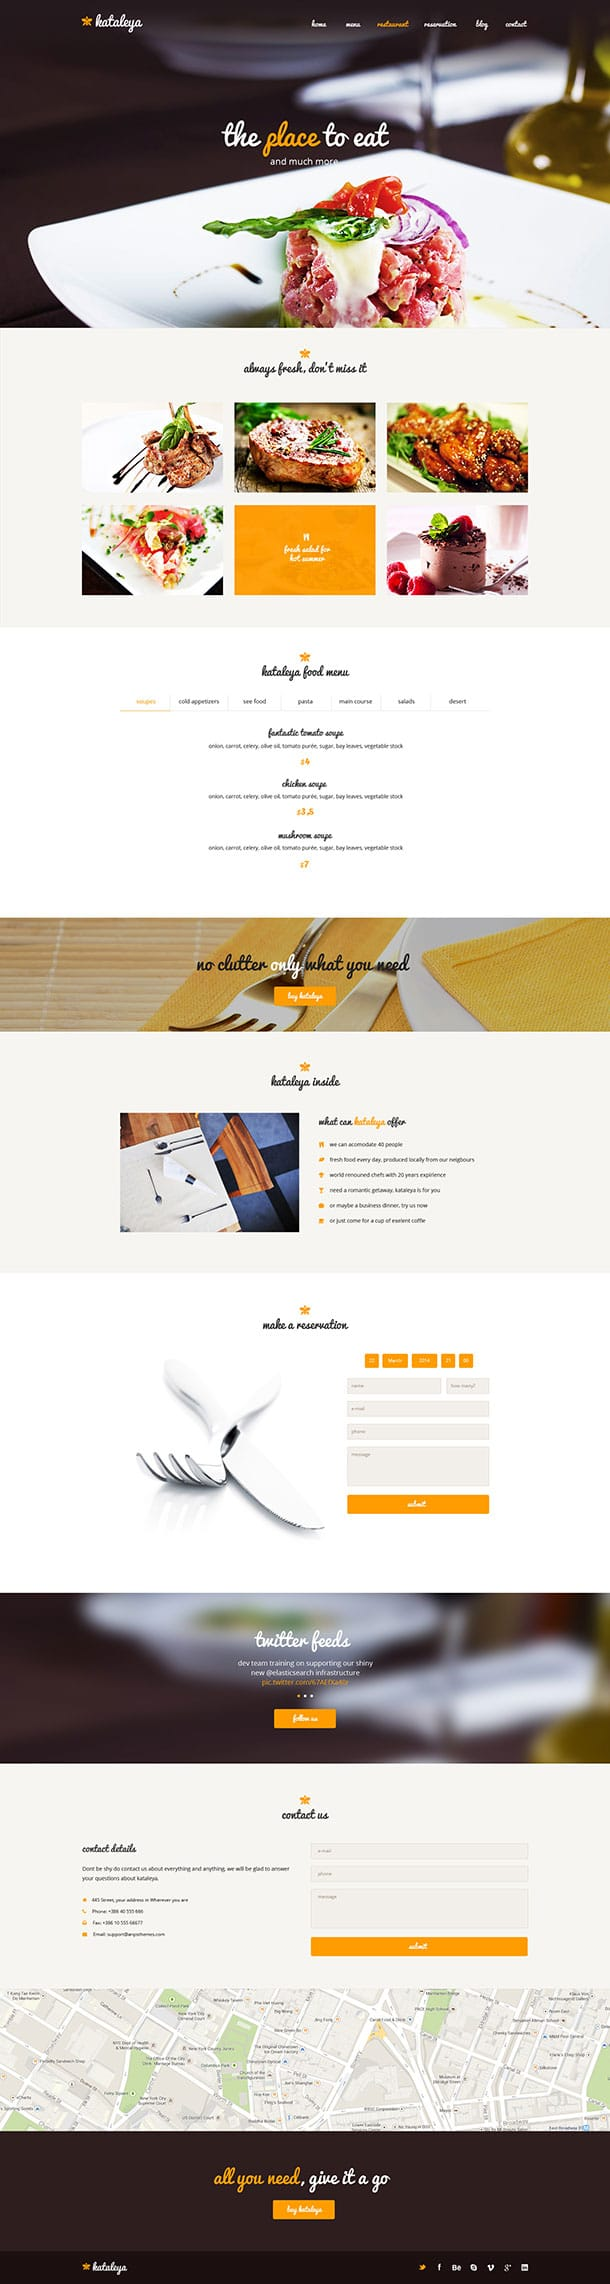 kataleya-wordpress-theme